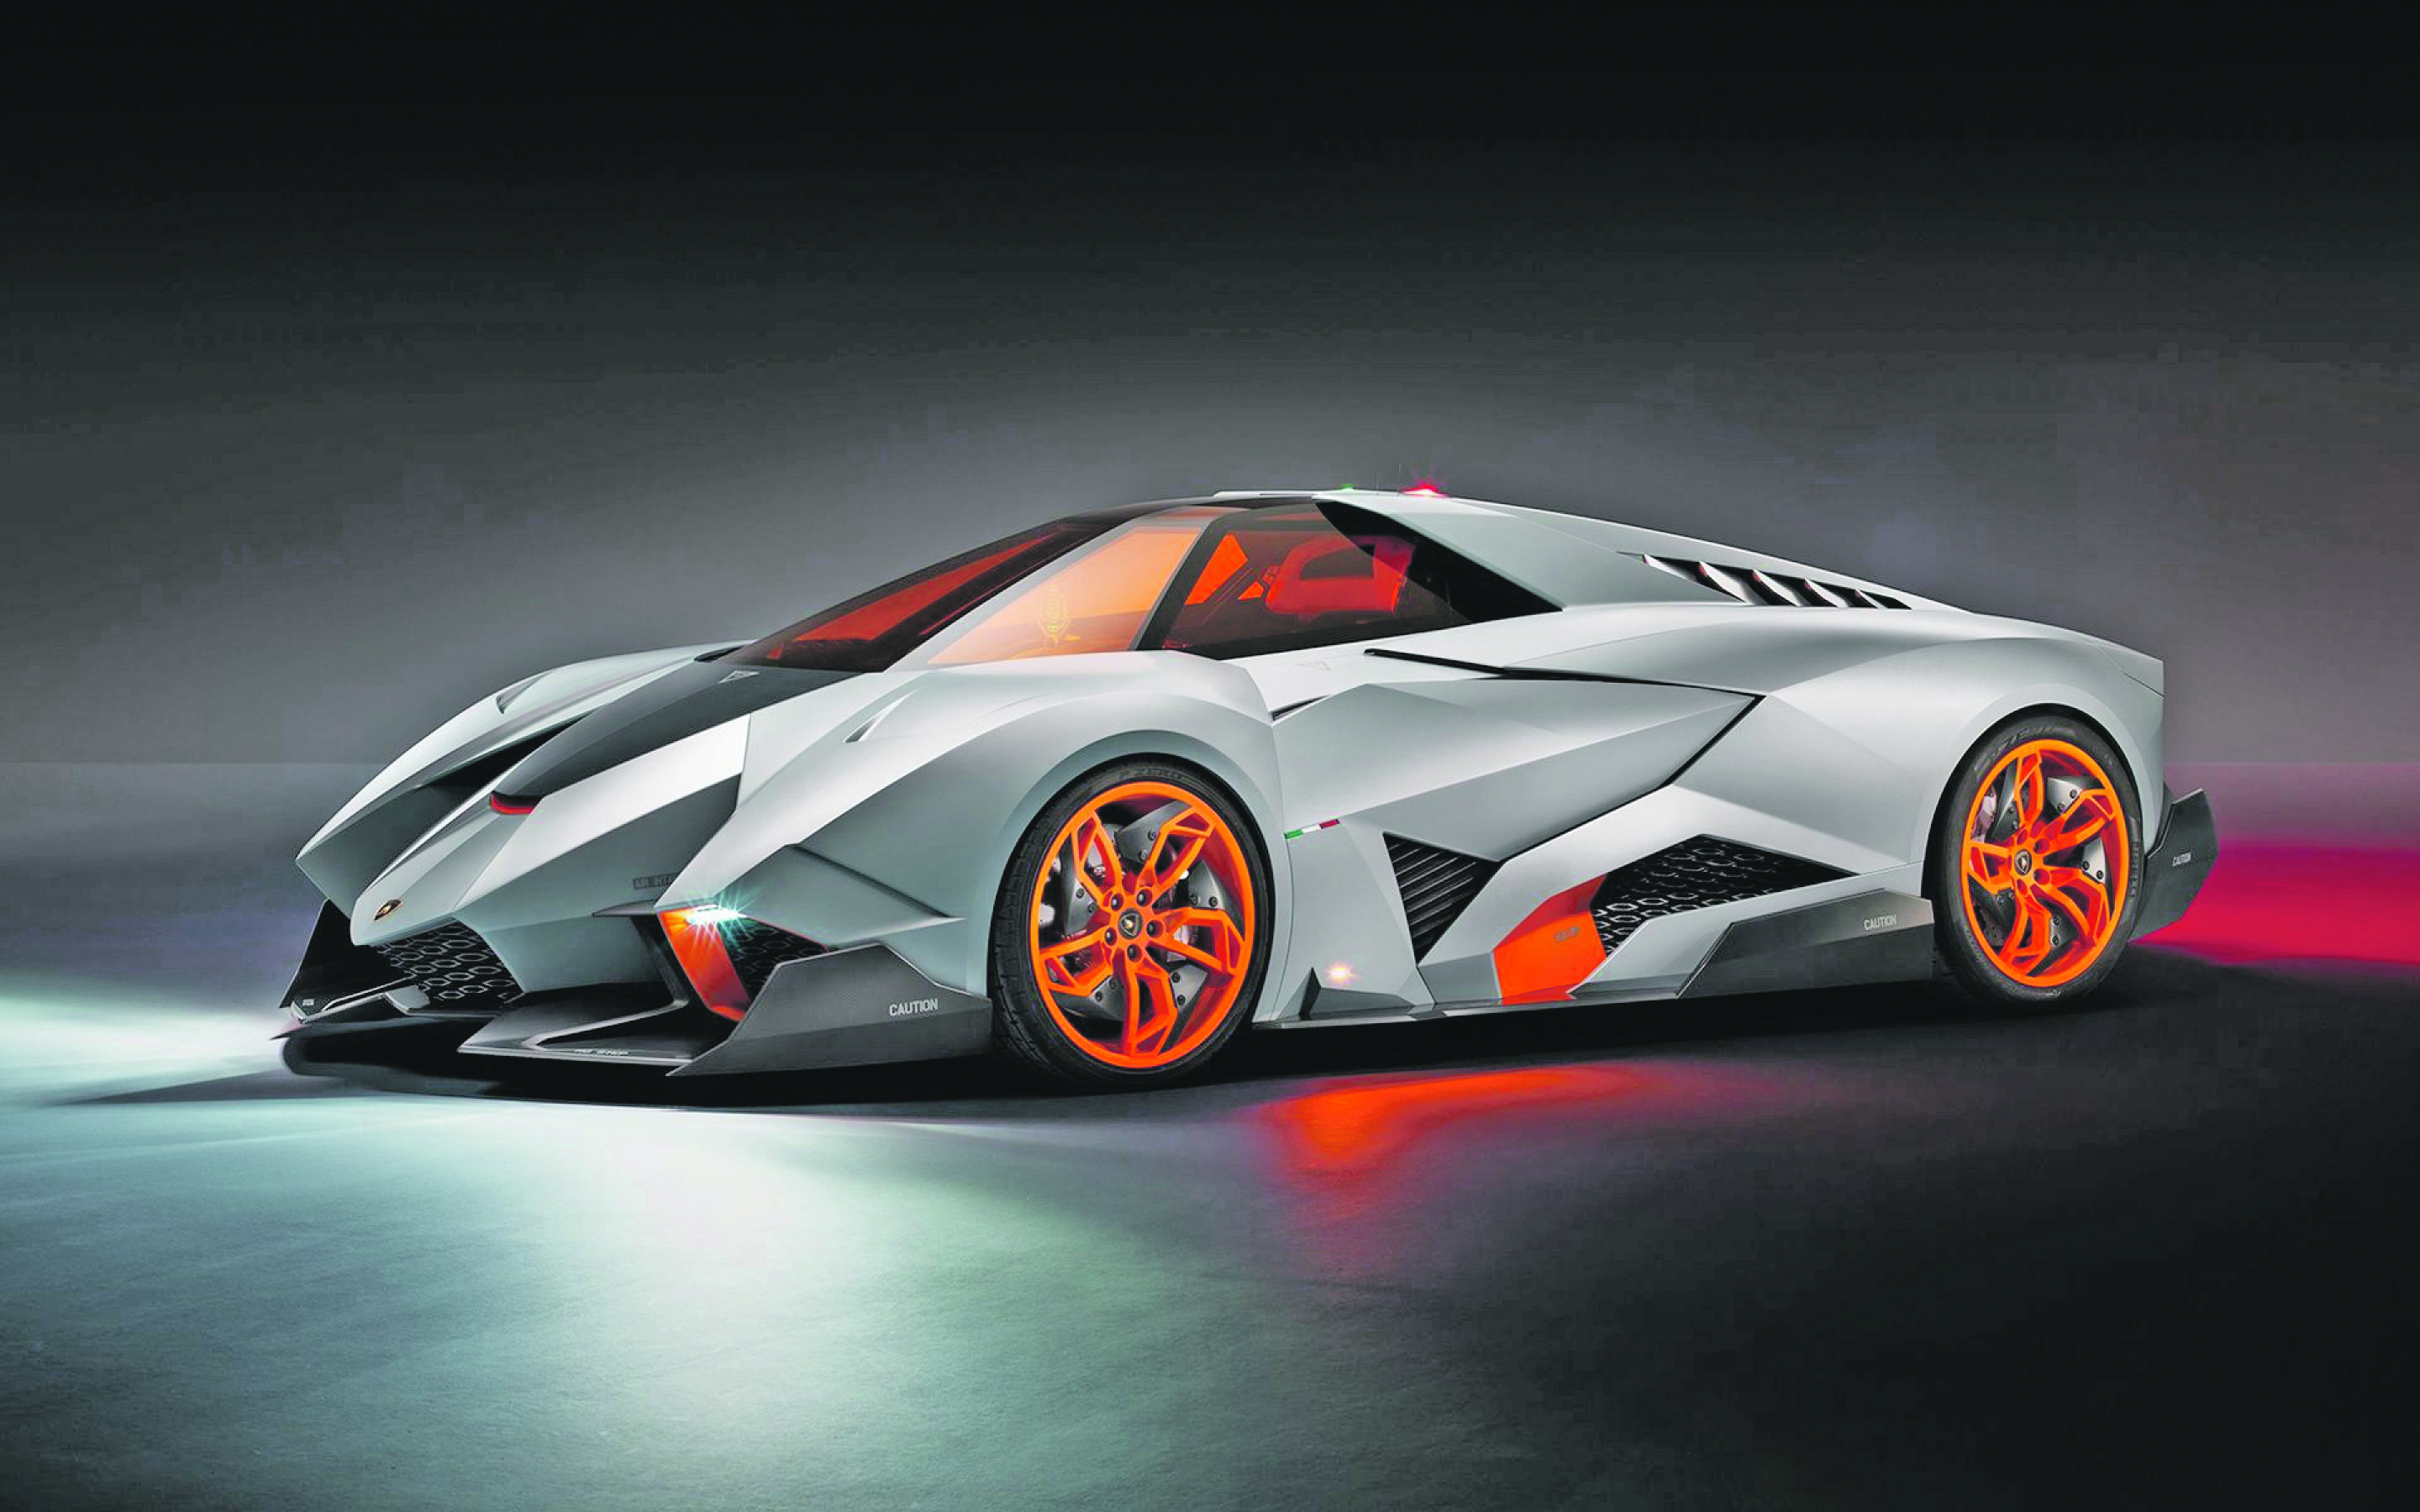 Lamborghini egoista clipart svg library download Lamborghini Egoista Concept 6 wallpaper svg library download